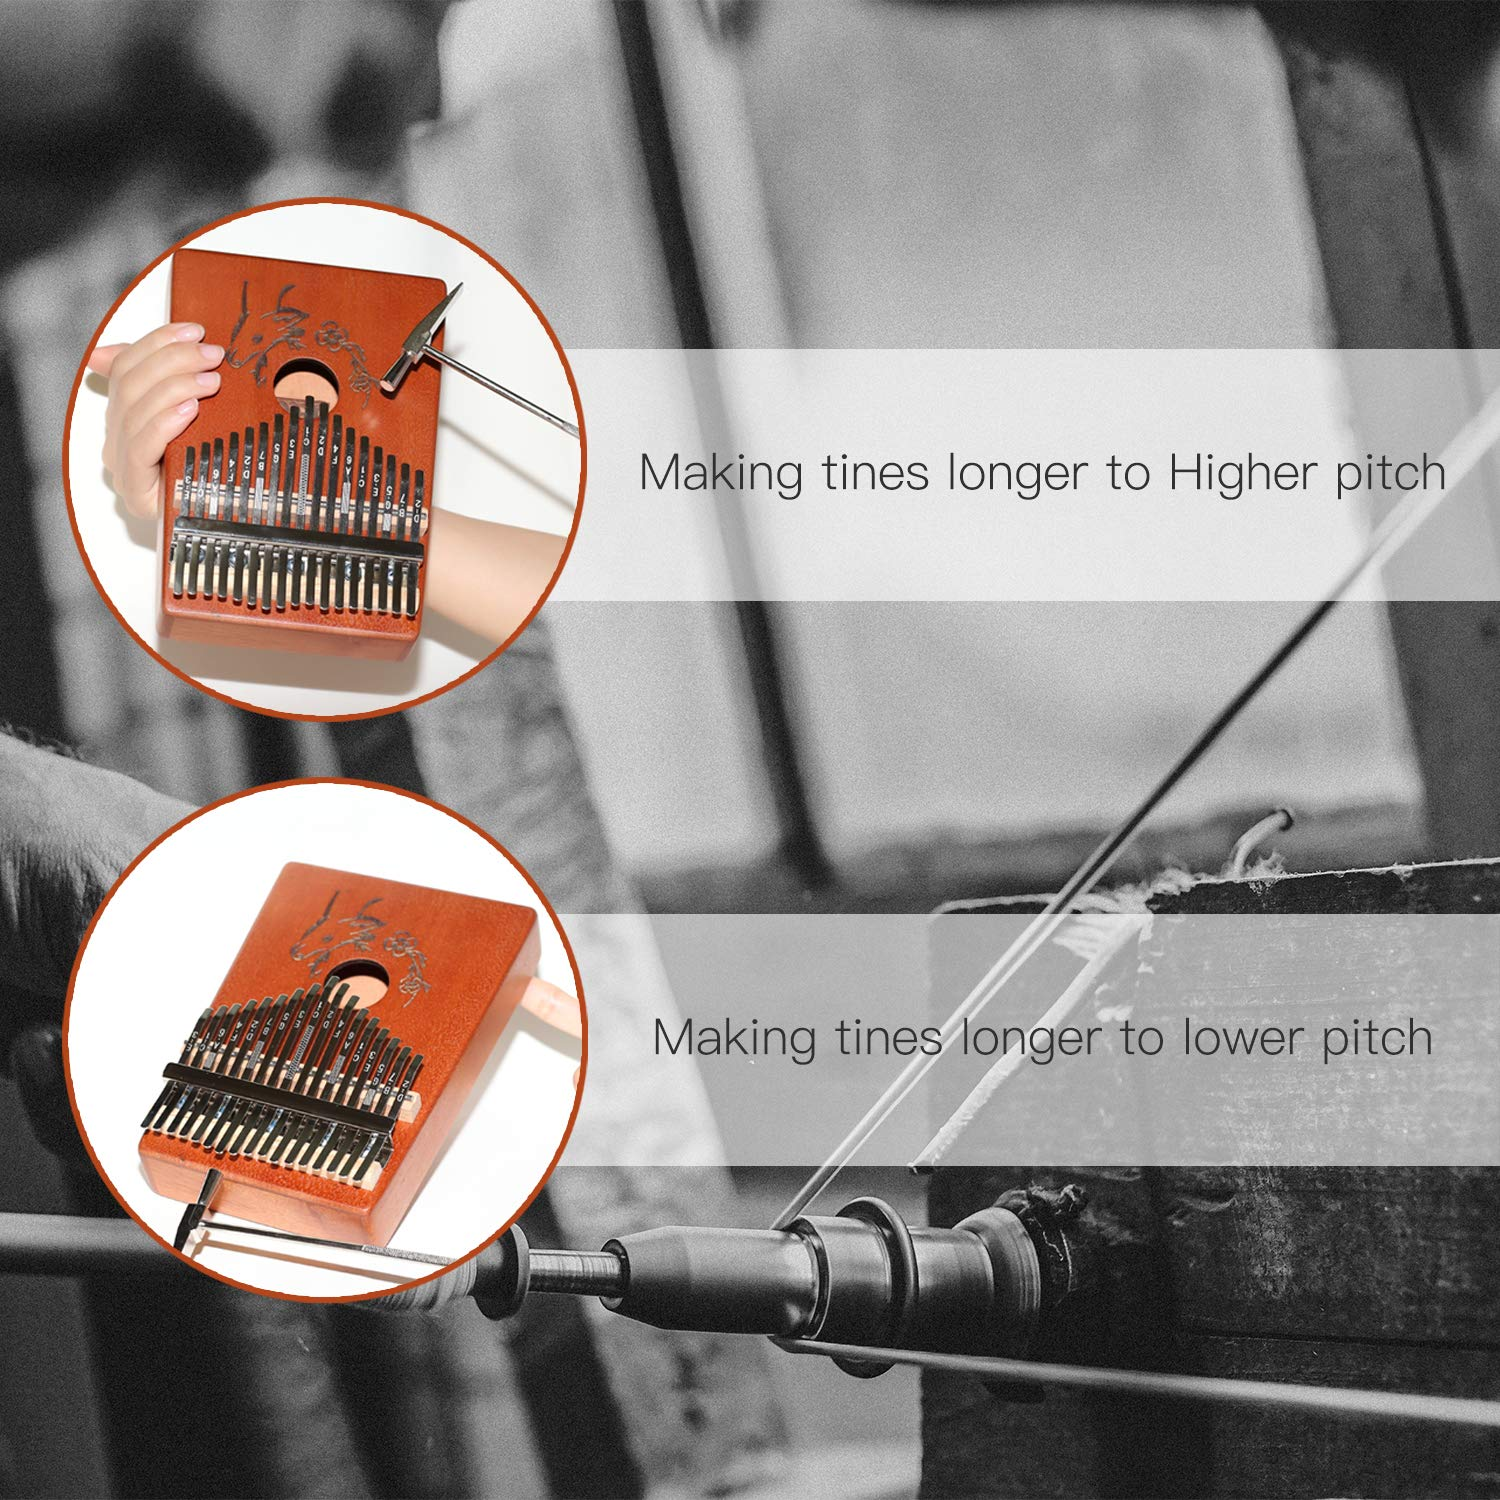 AECCN Kalimba 17 Keys Thumb Piano - Pocket Size With Study Instruction and Tune-Hammer & Simple Sheet Music, Christmas Day Birthday Gifts Idea for Kids Adults Beginners, Professionals (Deer) by AECCN (Image #4)